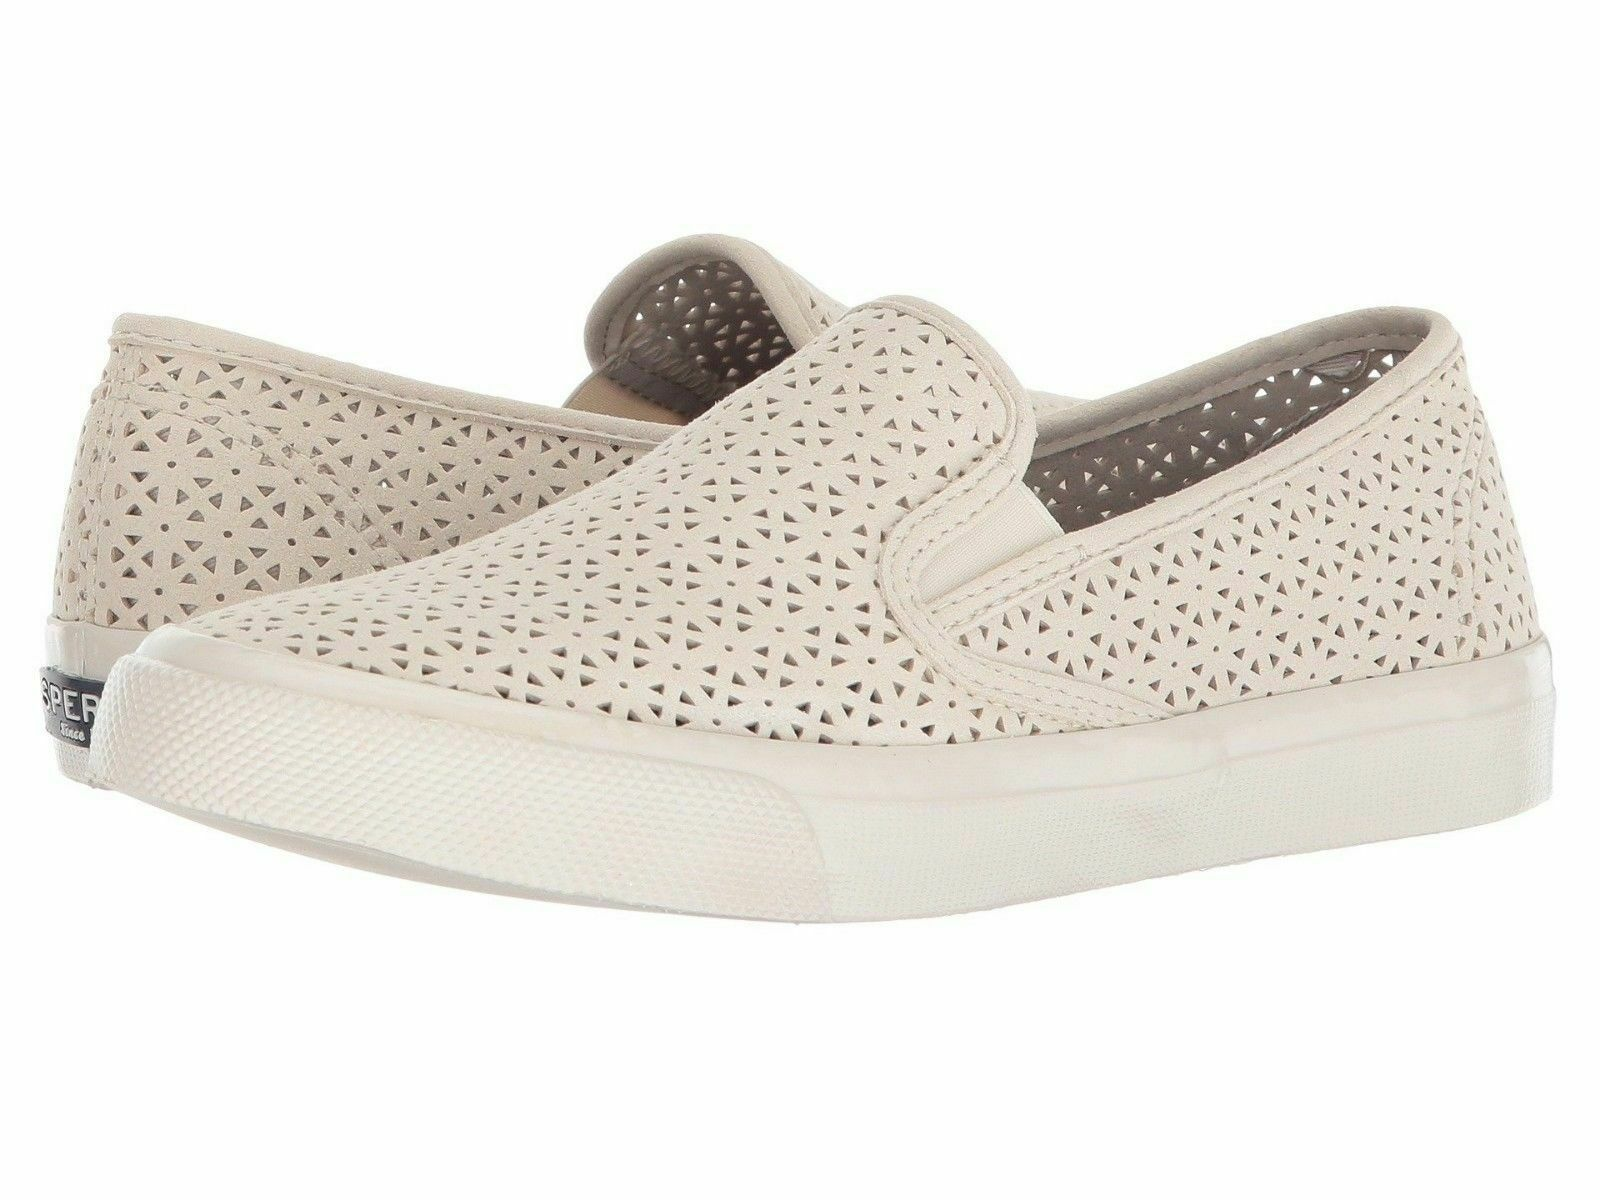 Femmes Sperry Top-Sider Nautique Perf Cuir Ivoire Chaussures 6.5 9.5 10 Nib